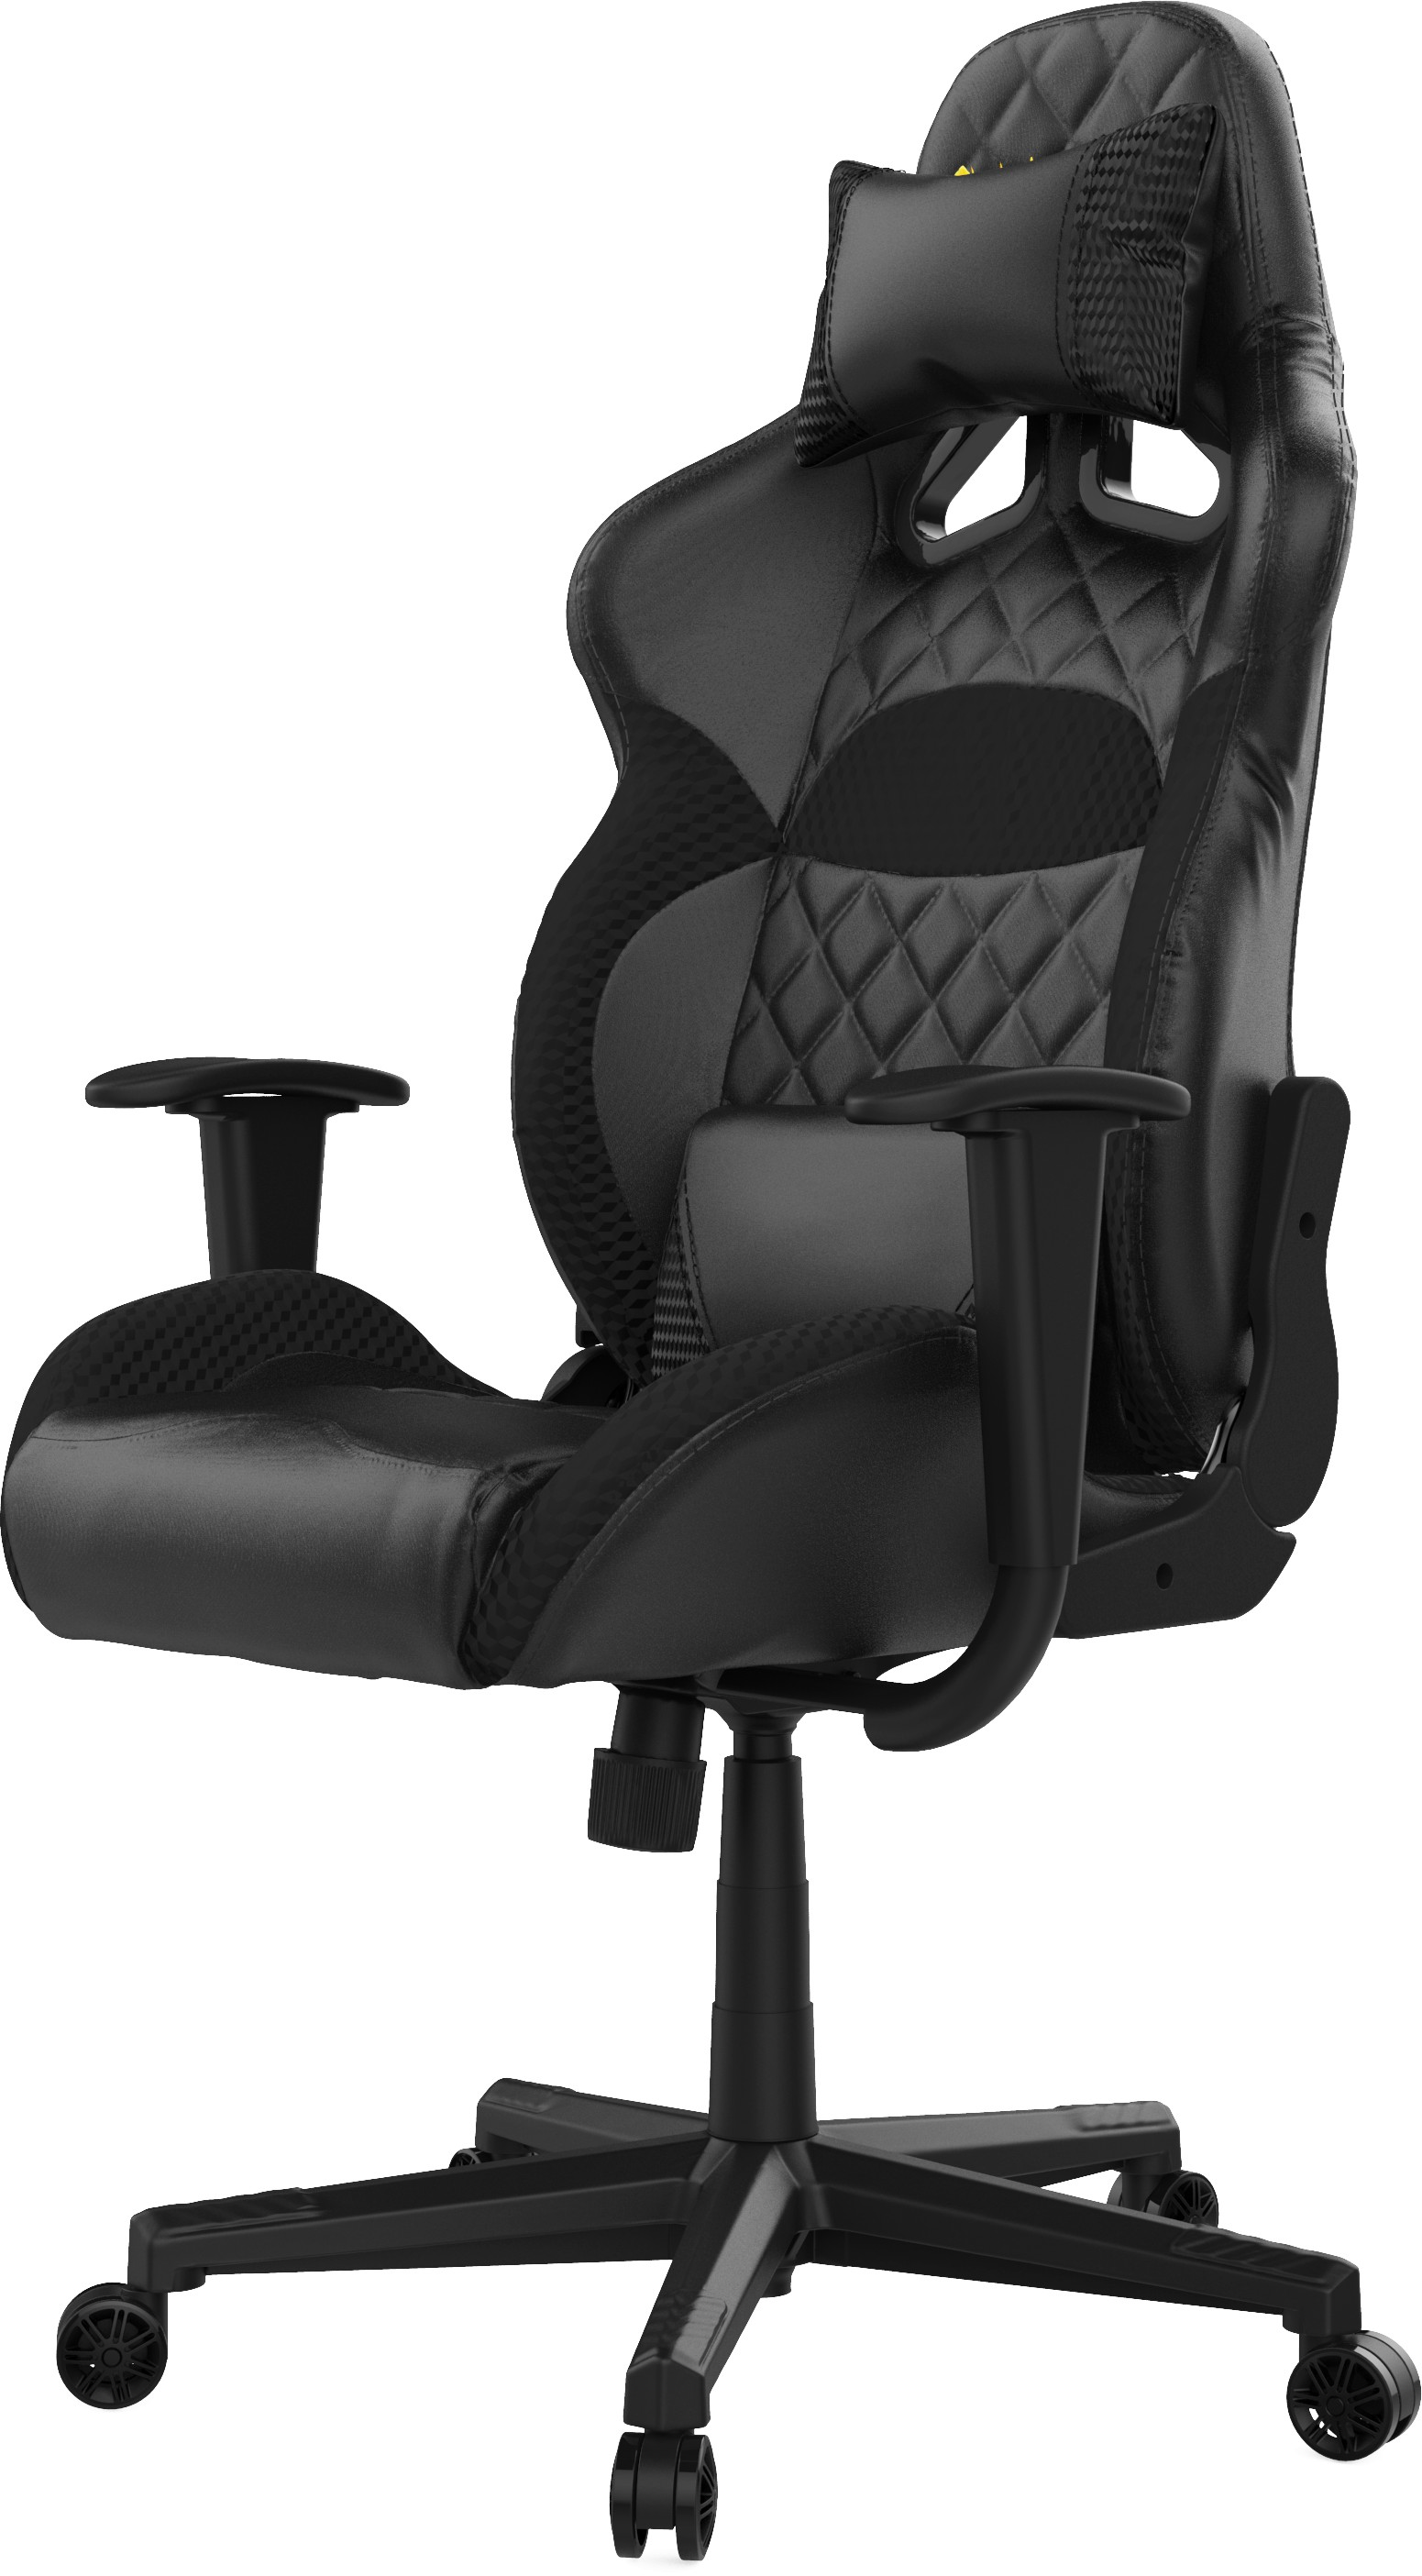 GAMDIAS ZELUS E1 L B Gaming Chair